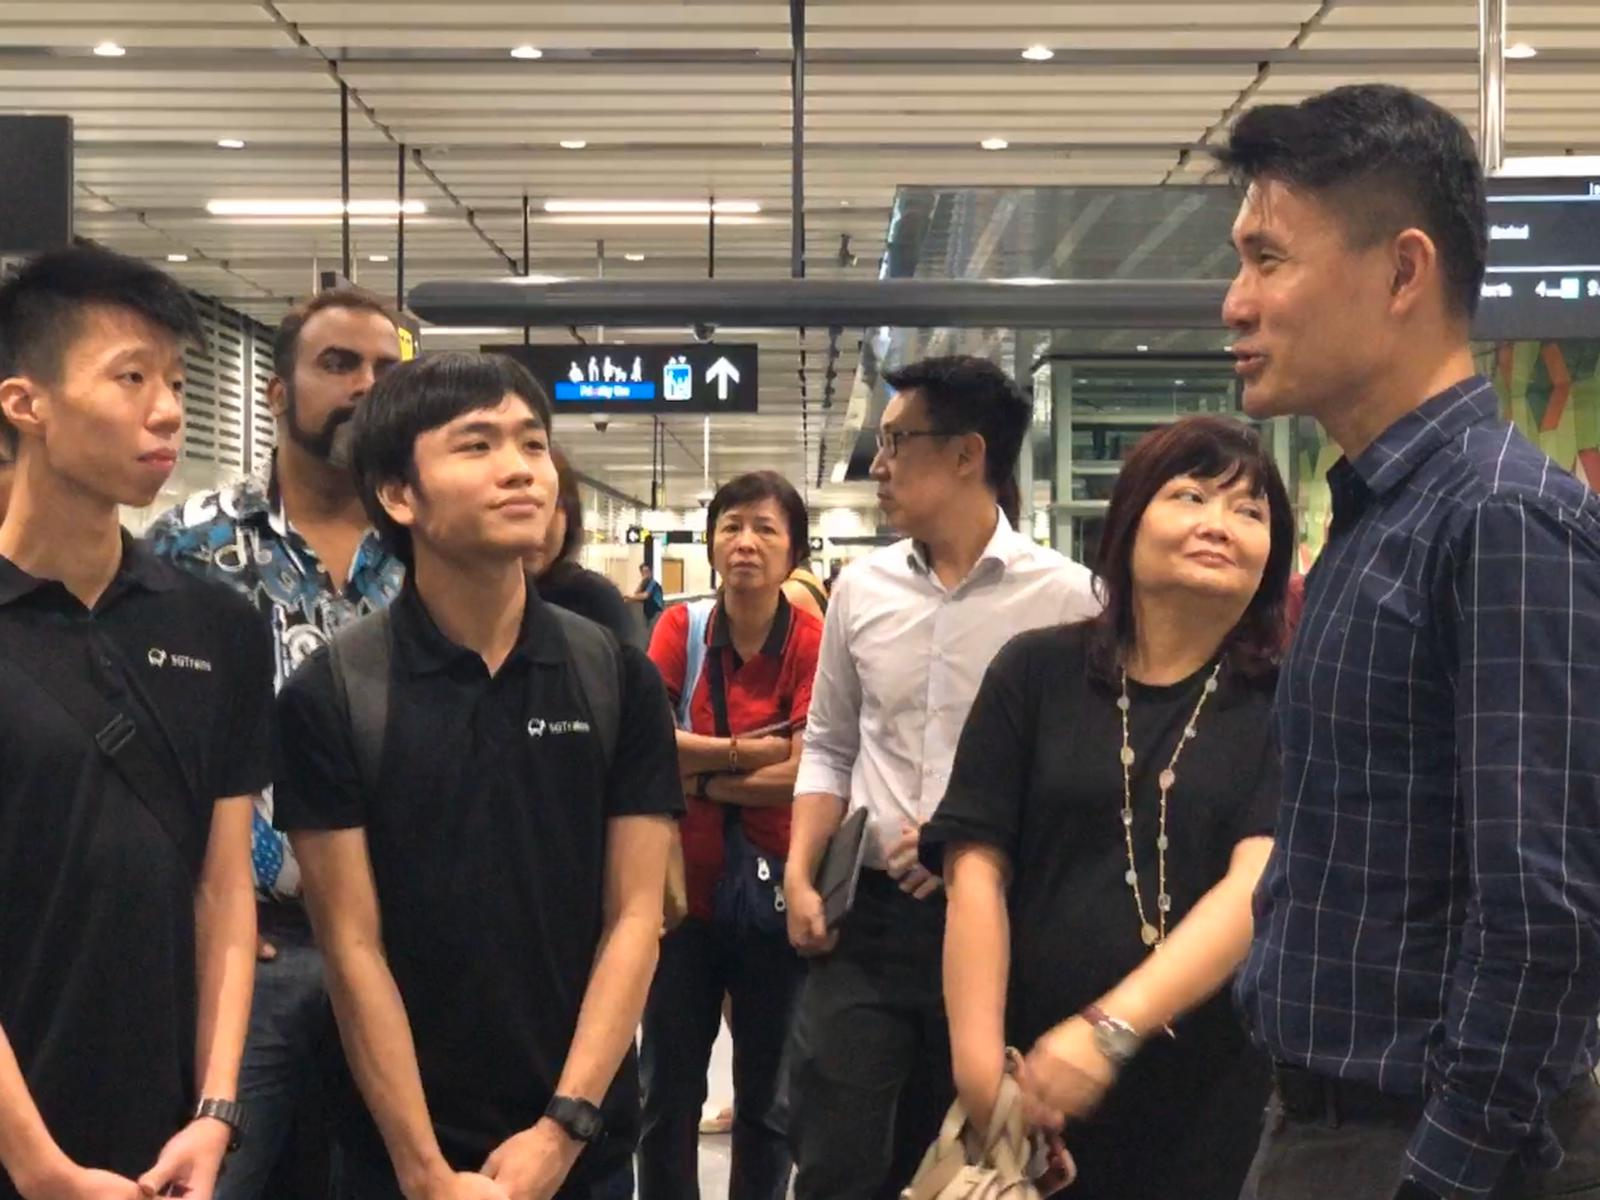 Senior Parliamentary Secretary for Ministry of Transport and Culture, Community & Youth Baey Yam Keng (extreme right) and train enthusiast Matthew Ng (second from left) discuss the old system map.